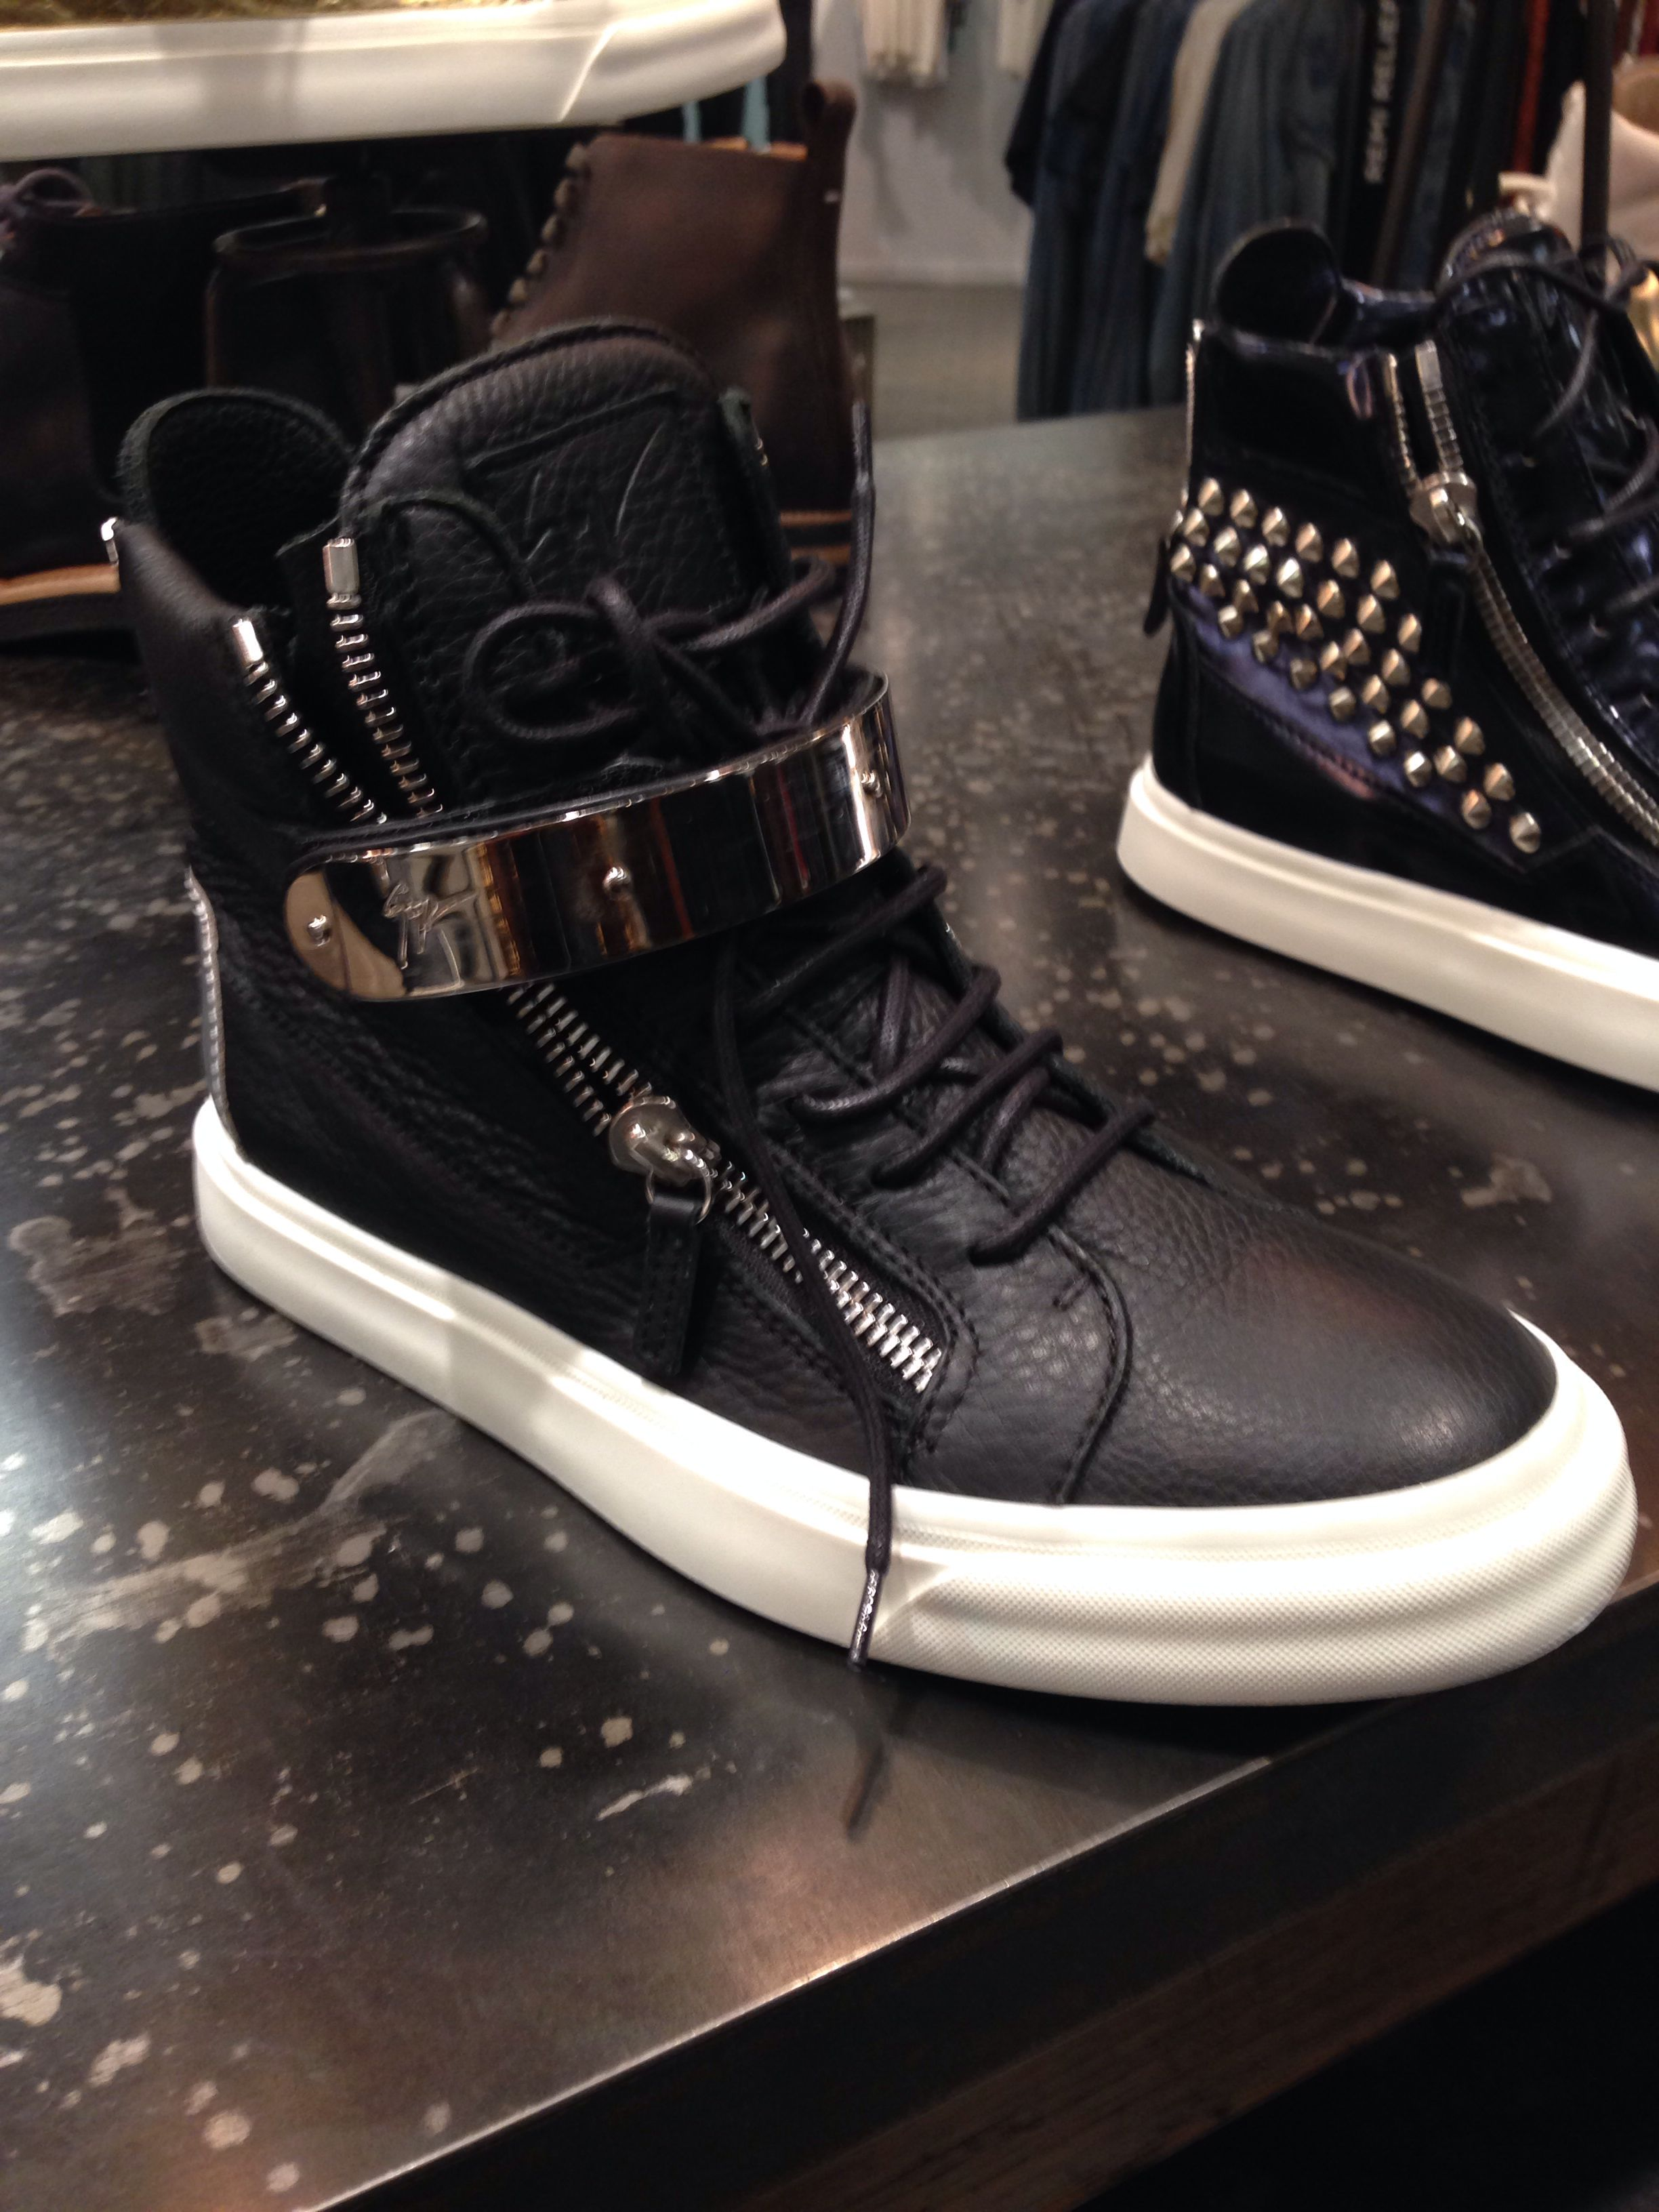 d24c095680837 Giuseppe Zanotti sneakers (men) @Saks Fifth Avenue Fifth Avenue Fifth Avenue